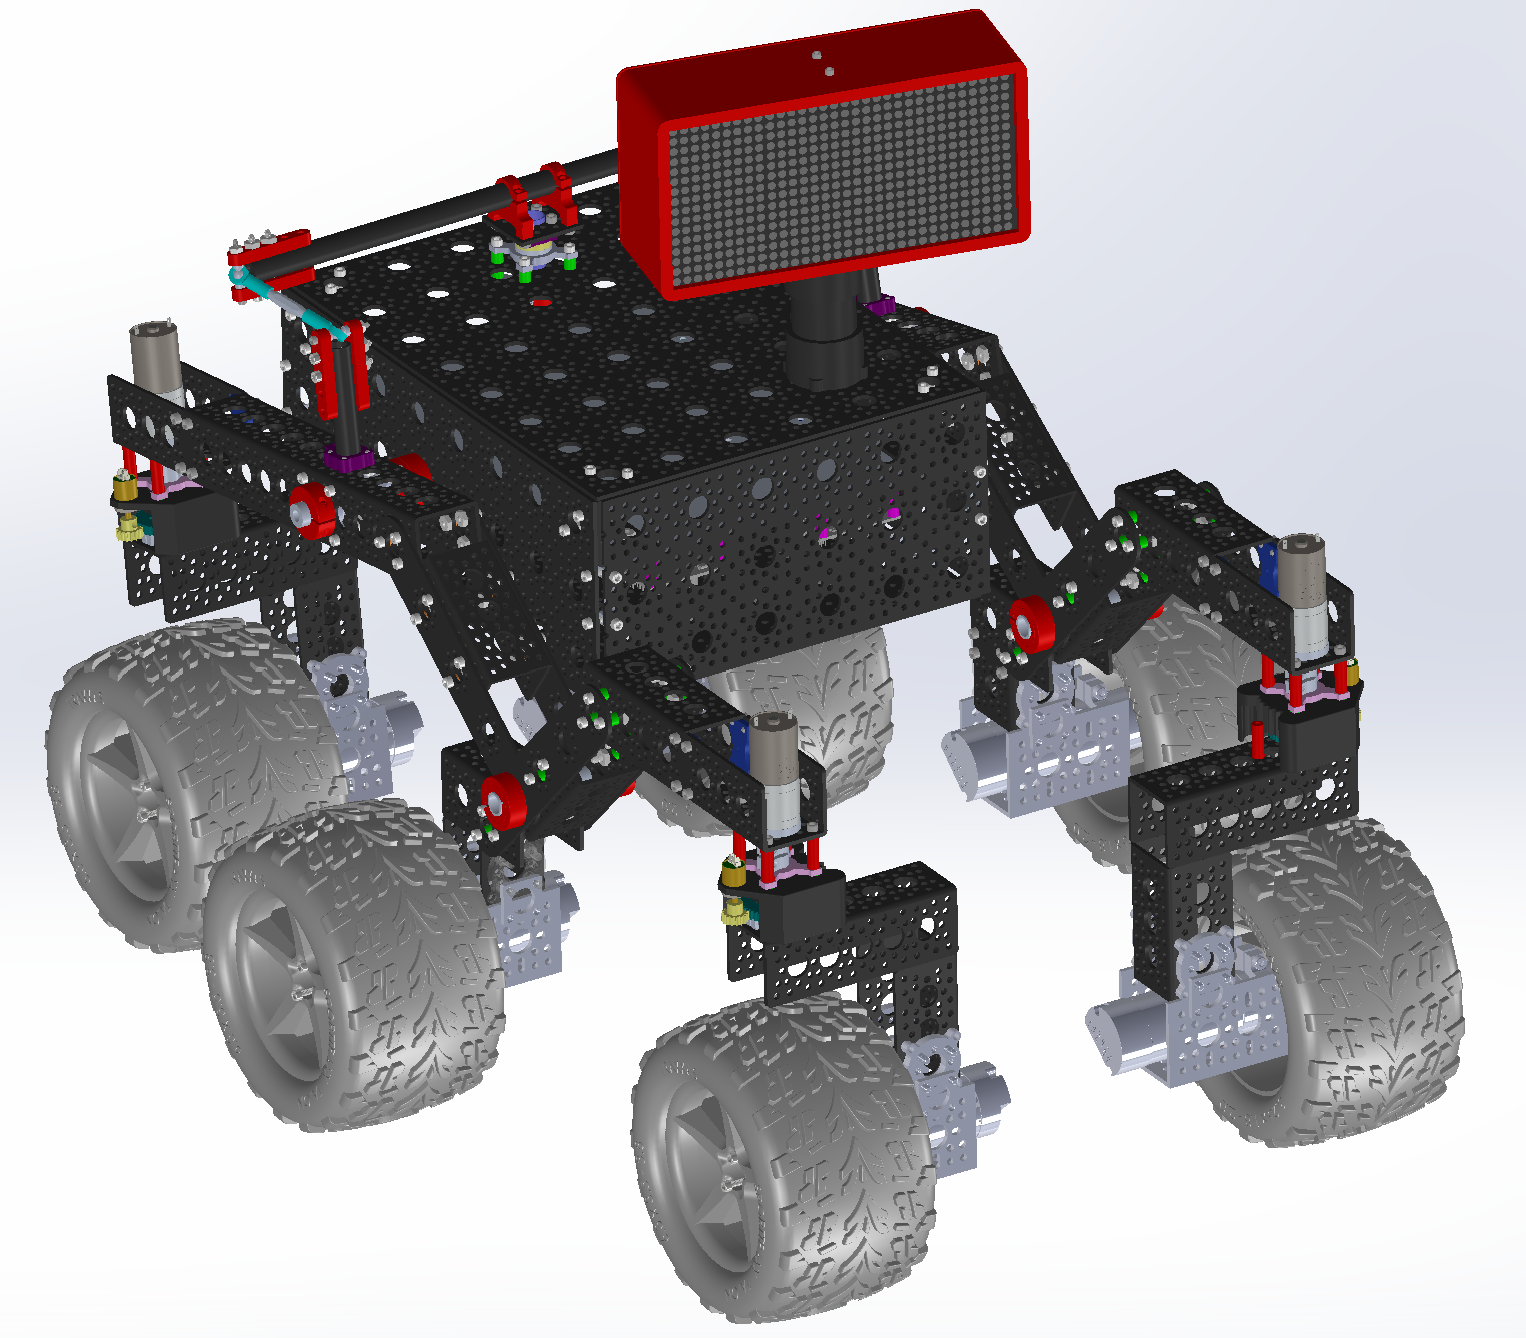 JPL Open Source Rover Project